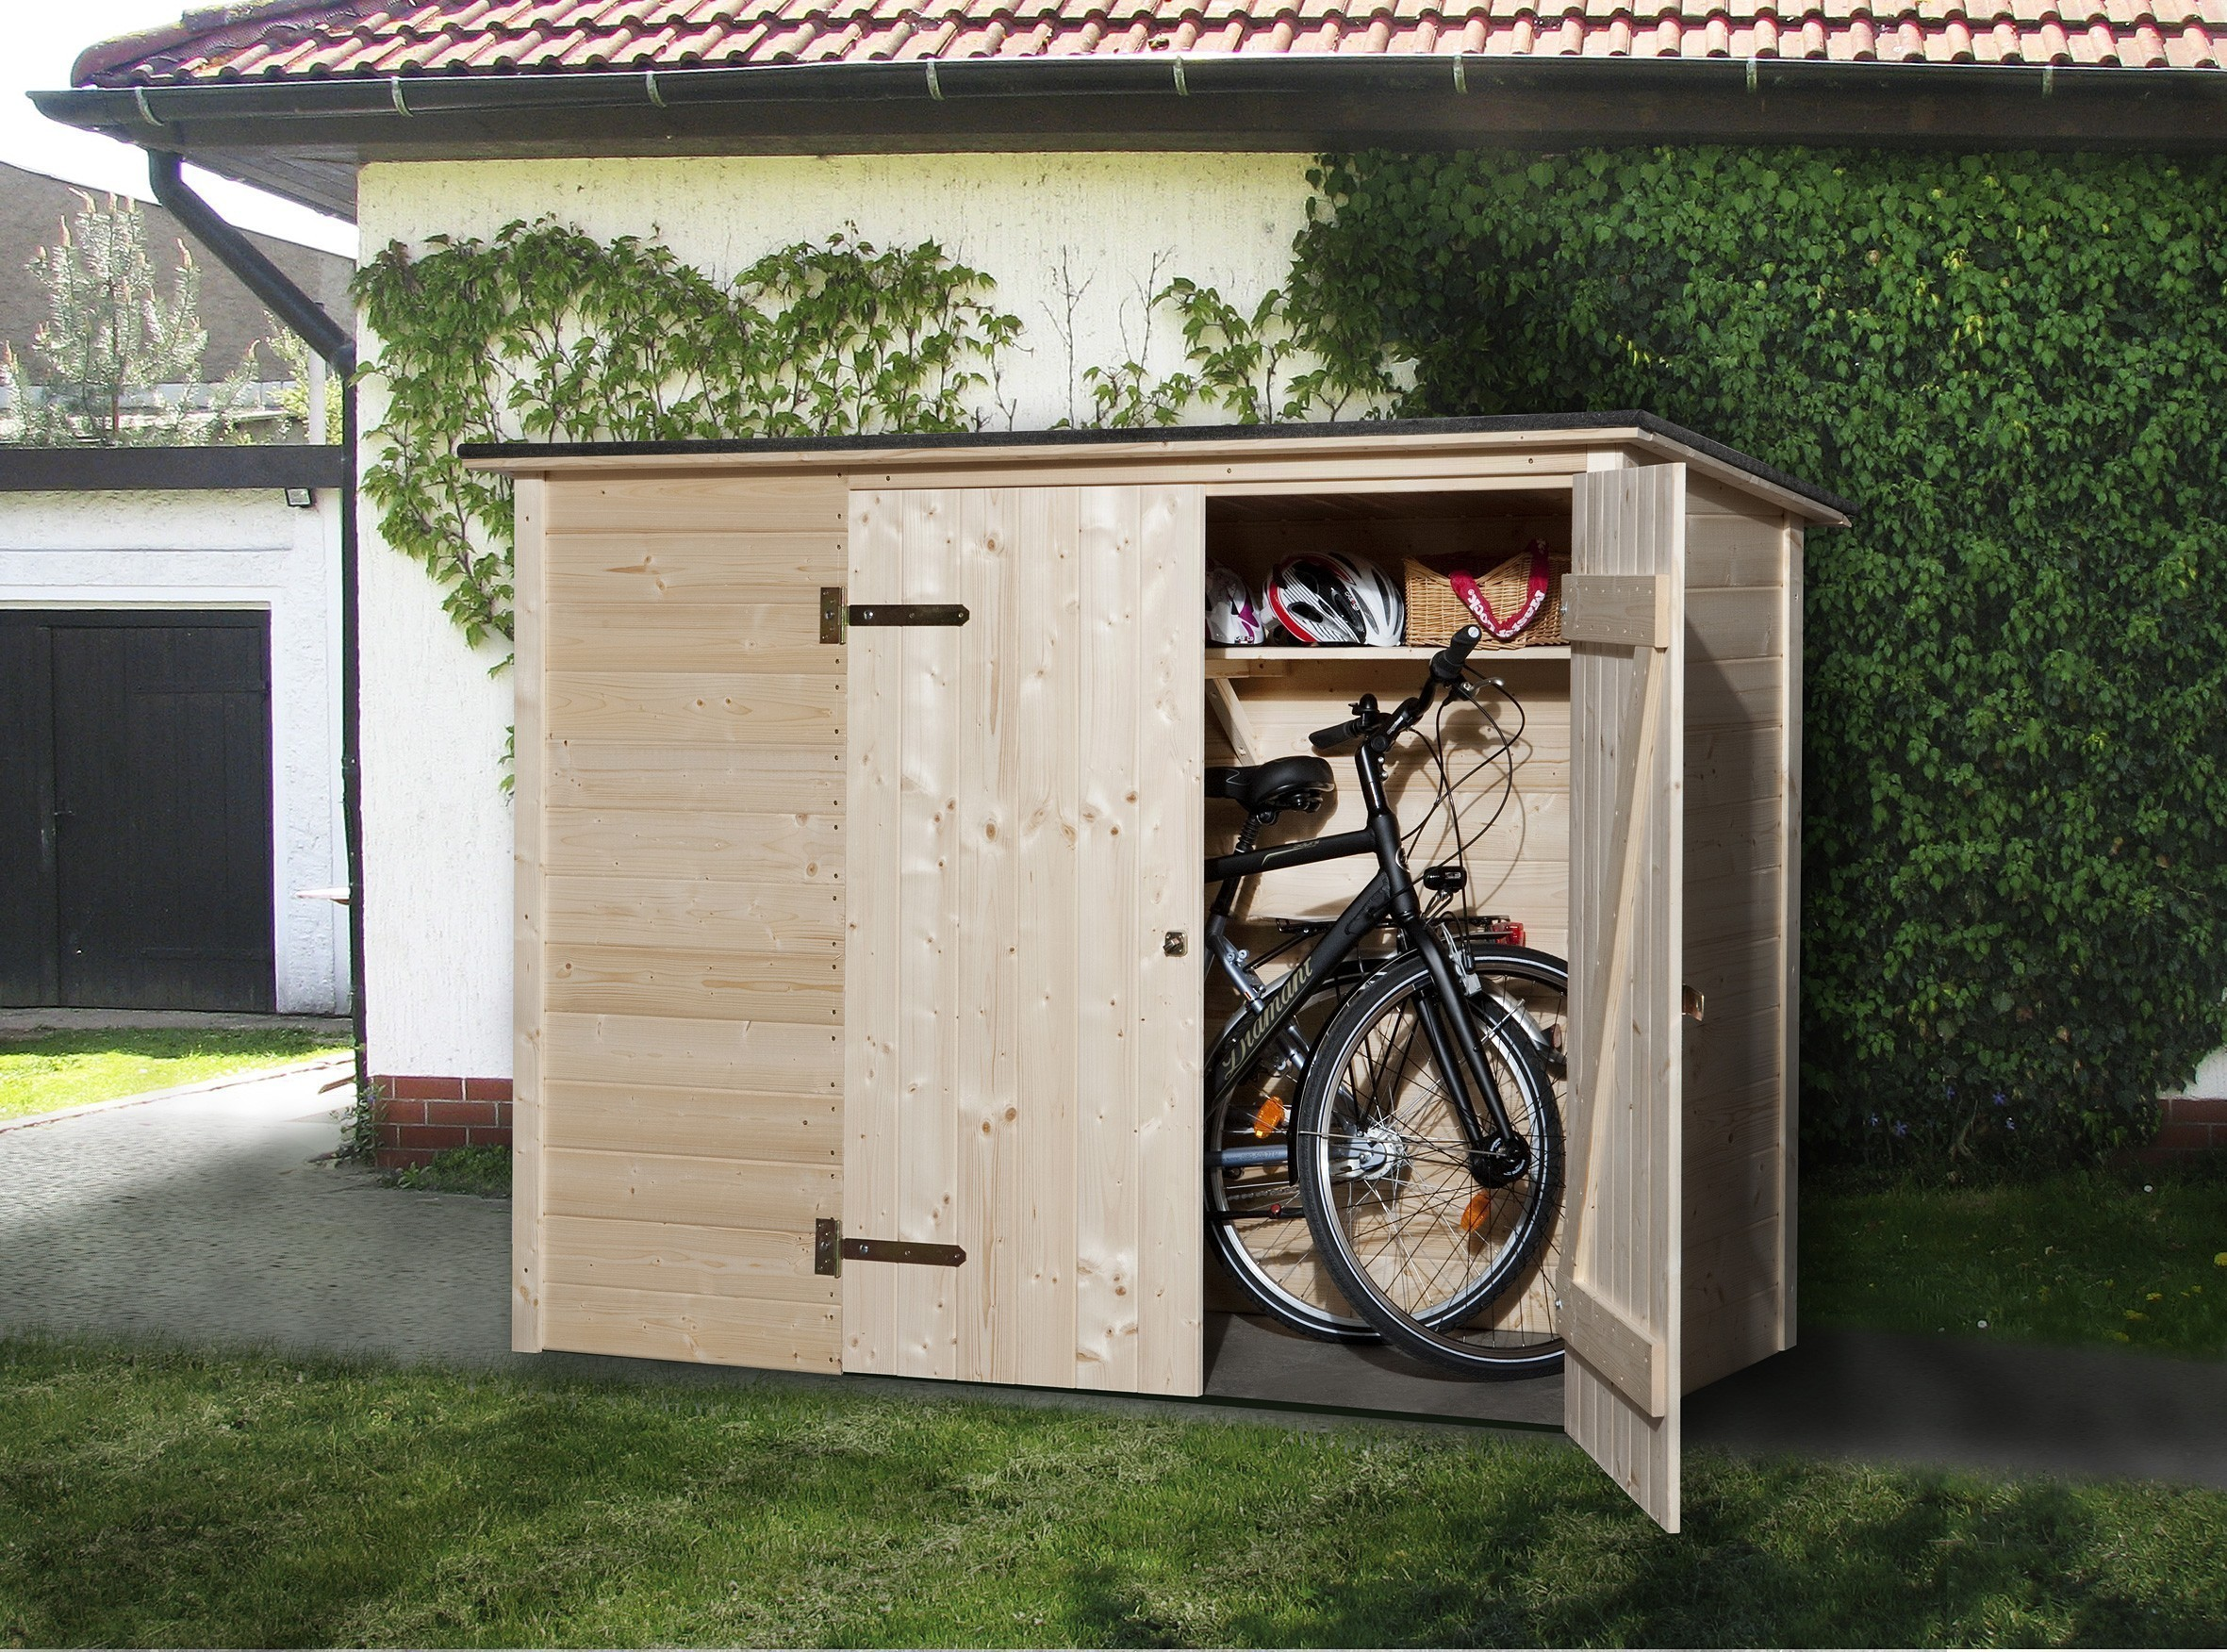 weka fahrradbox m lltonnenbox 367 19mm 219x100cm bei. Black Bedroom Furniture Sets. Home Design Ideas